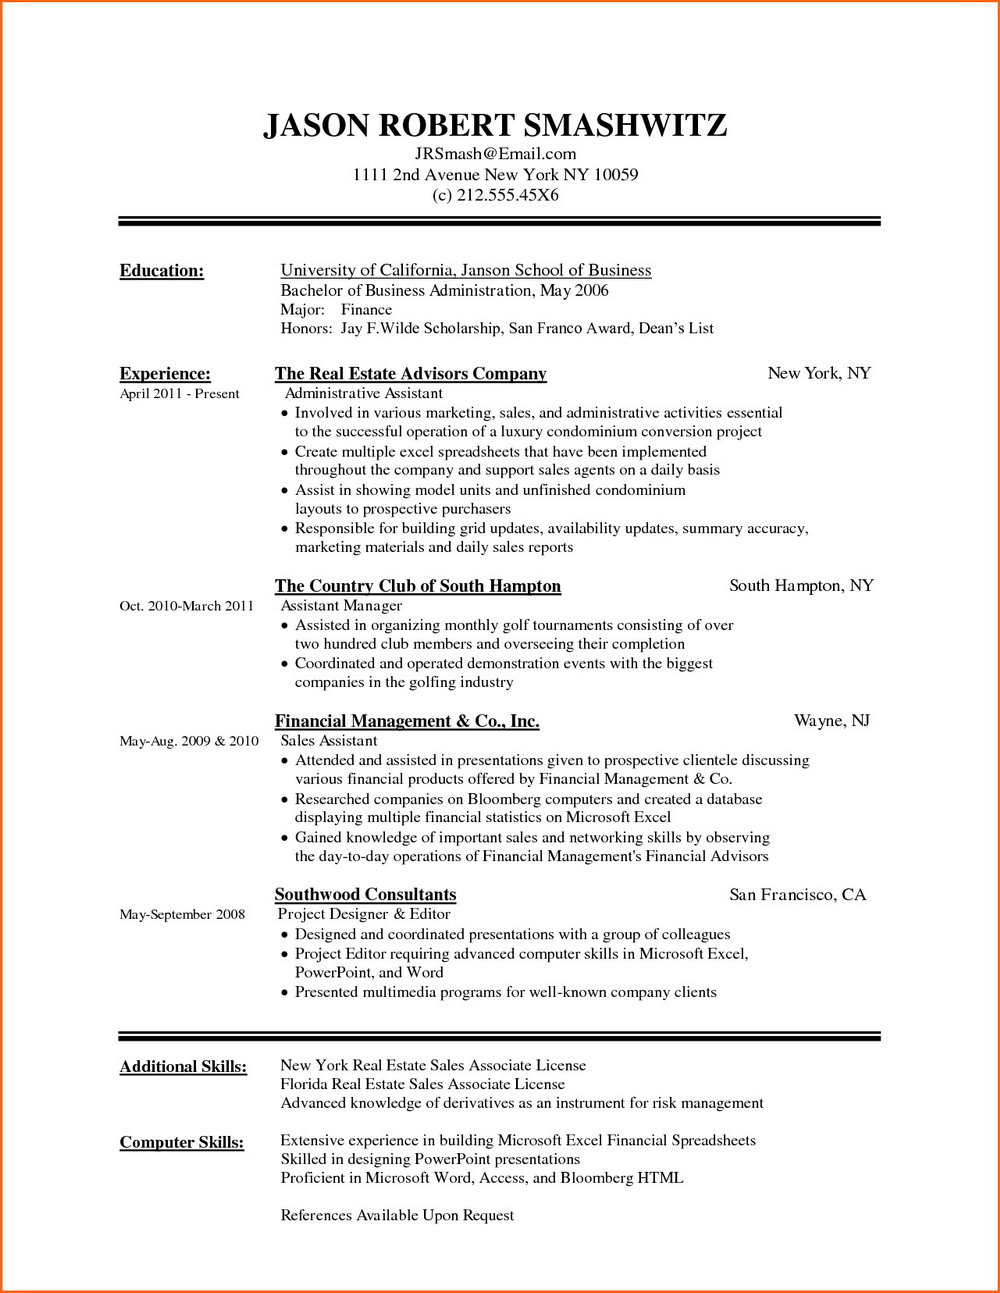 Resume Format Download In Ms Word 2007 Pdf